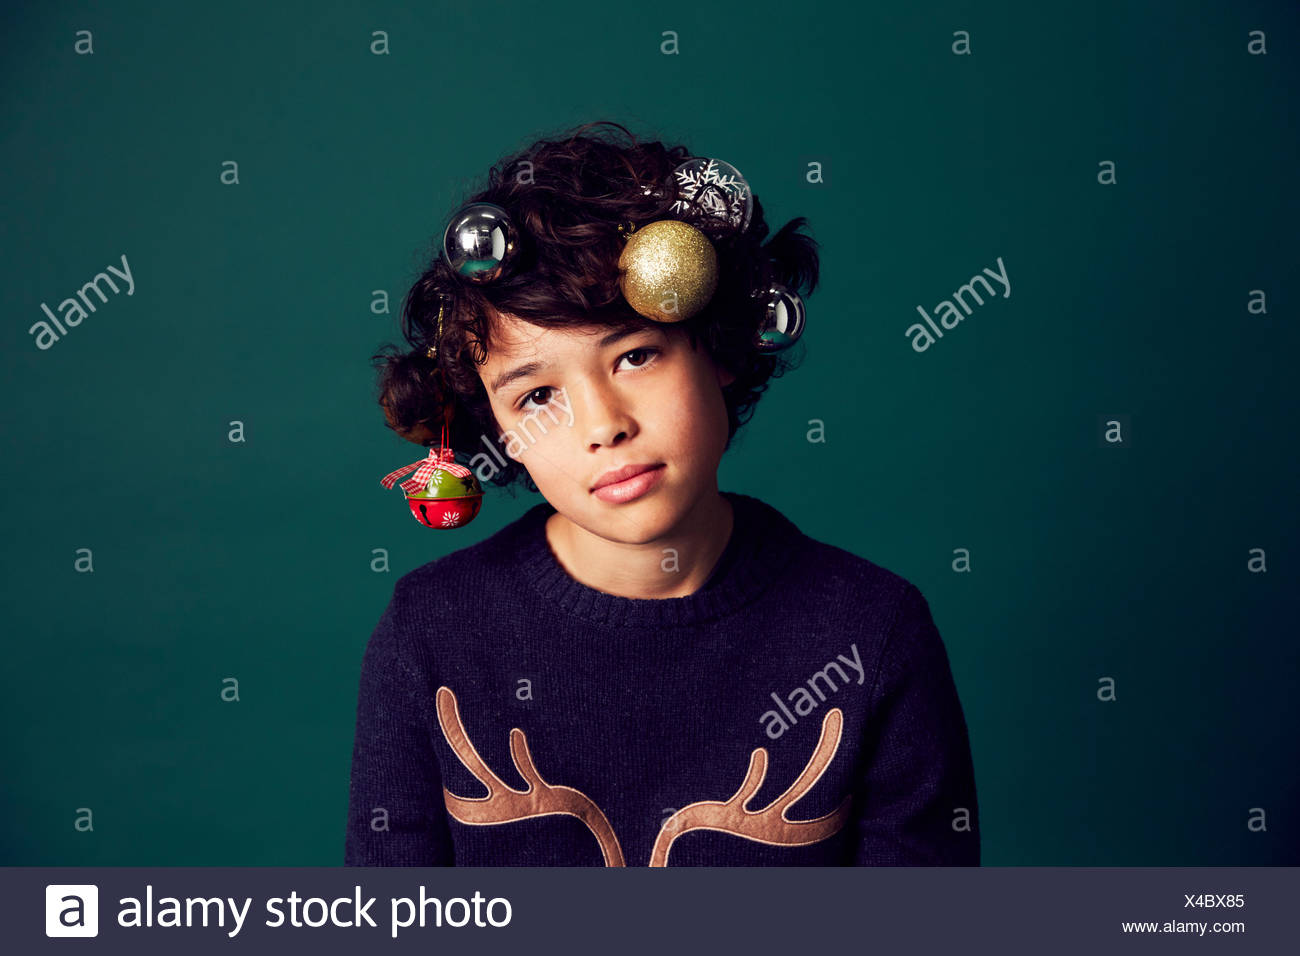 88358fa41b7 Portrait of teenage boy wearing Christmas jumper, and baubles in ...